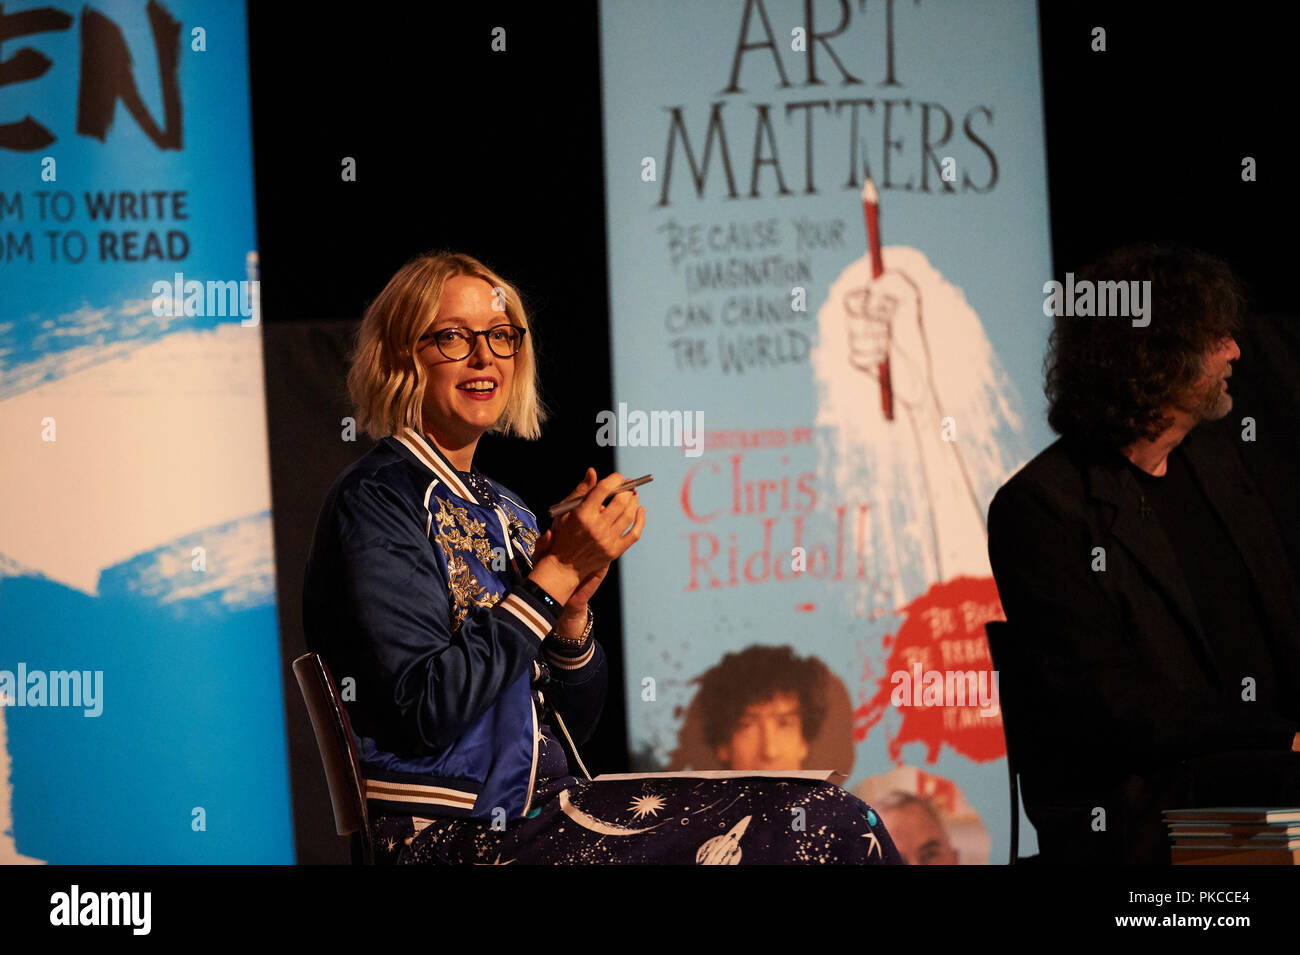 London, UK. 12th Sep 2018. Neil Gaiman and Chris Riddle at the newly opened EartHackney,  Art Matters Live hosted brilliantly by Lauren Laverne,  12th September 2018. London. Credit: Thomas Bowles/Alamy Live News Stock Photo